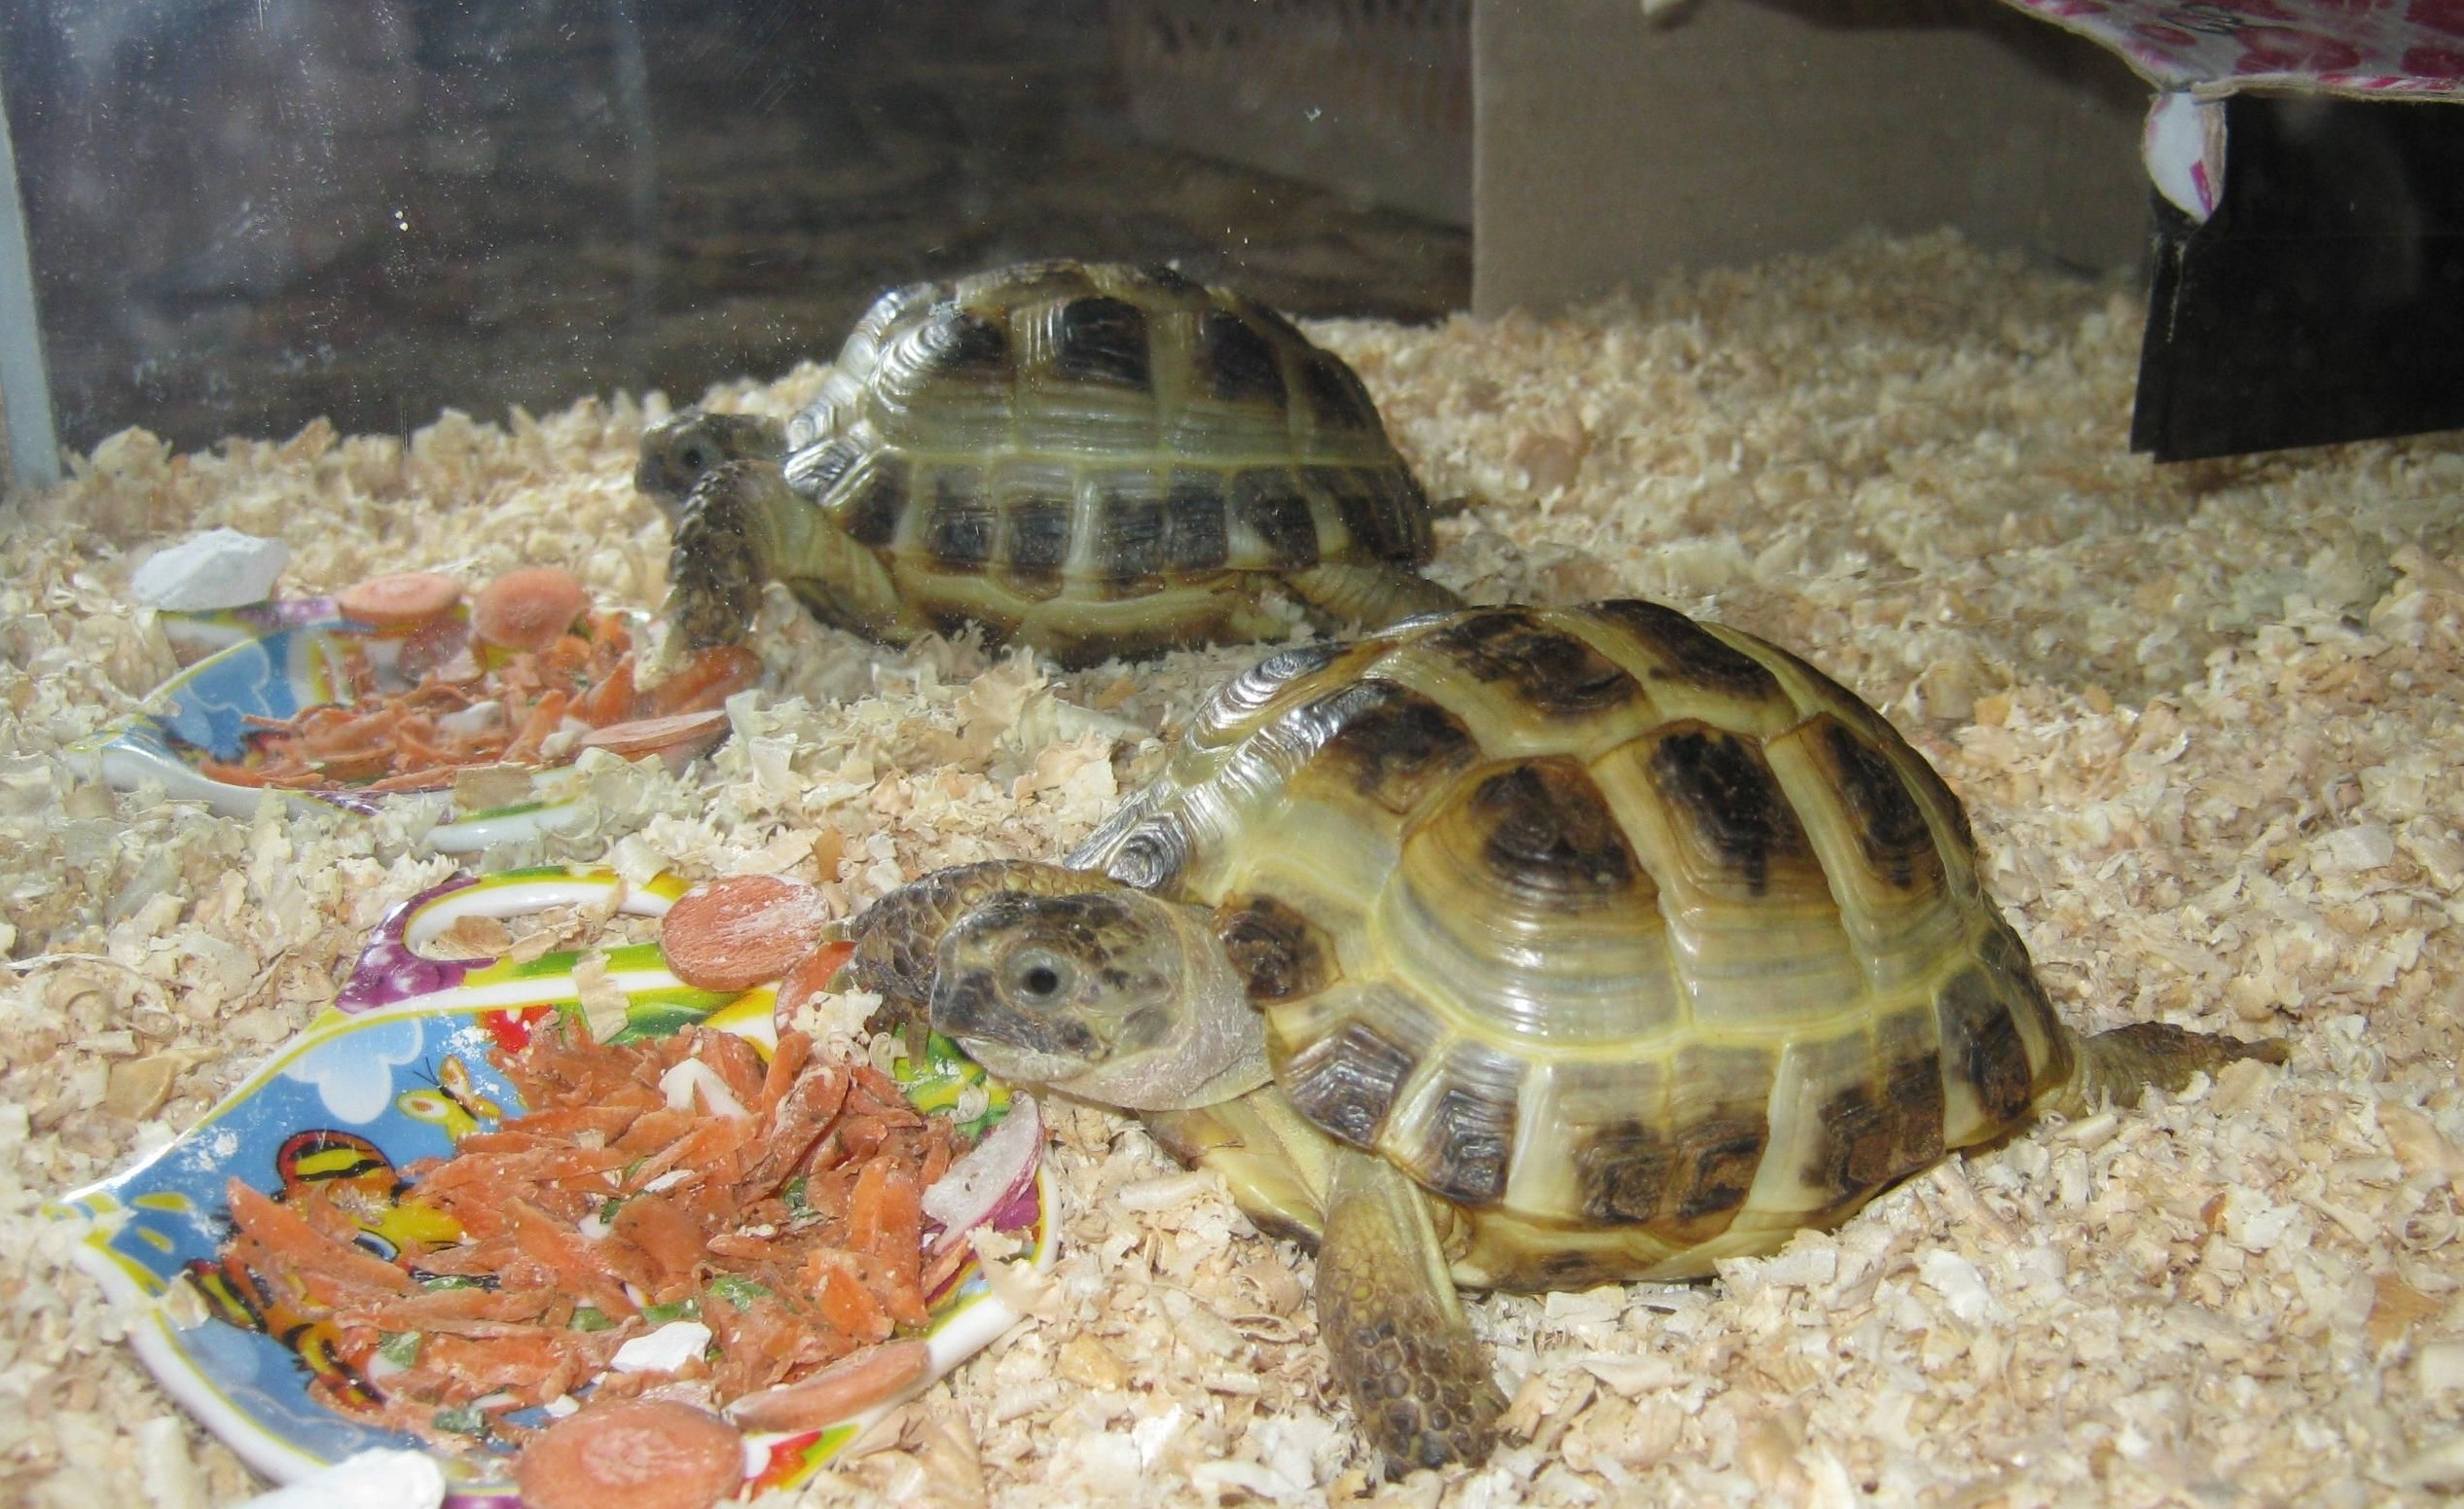 152276 download wallpaper Animals, Turtles, Food, Couple, Pair, Aquarium, Sawdust screensavers and pictures for free